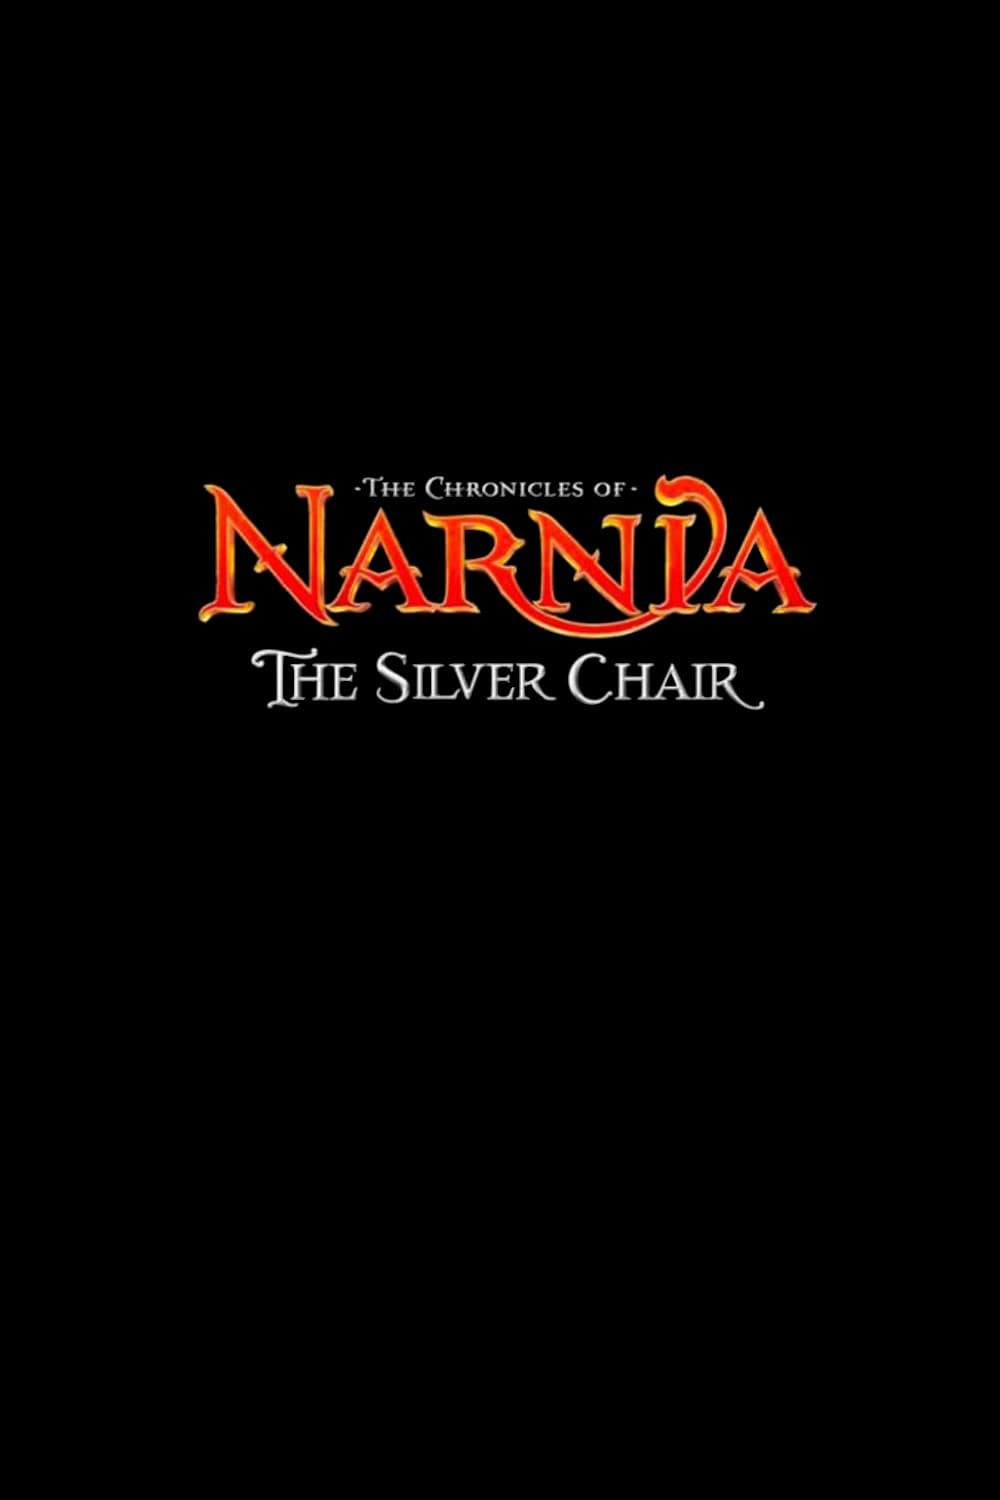 The Chronicles of Narnia: The Silver Chair (1970)